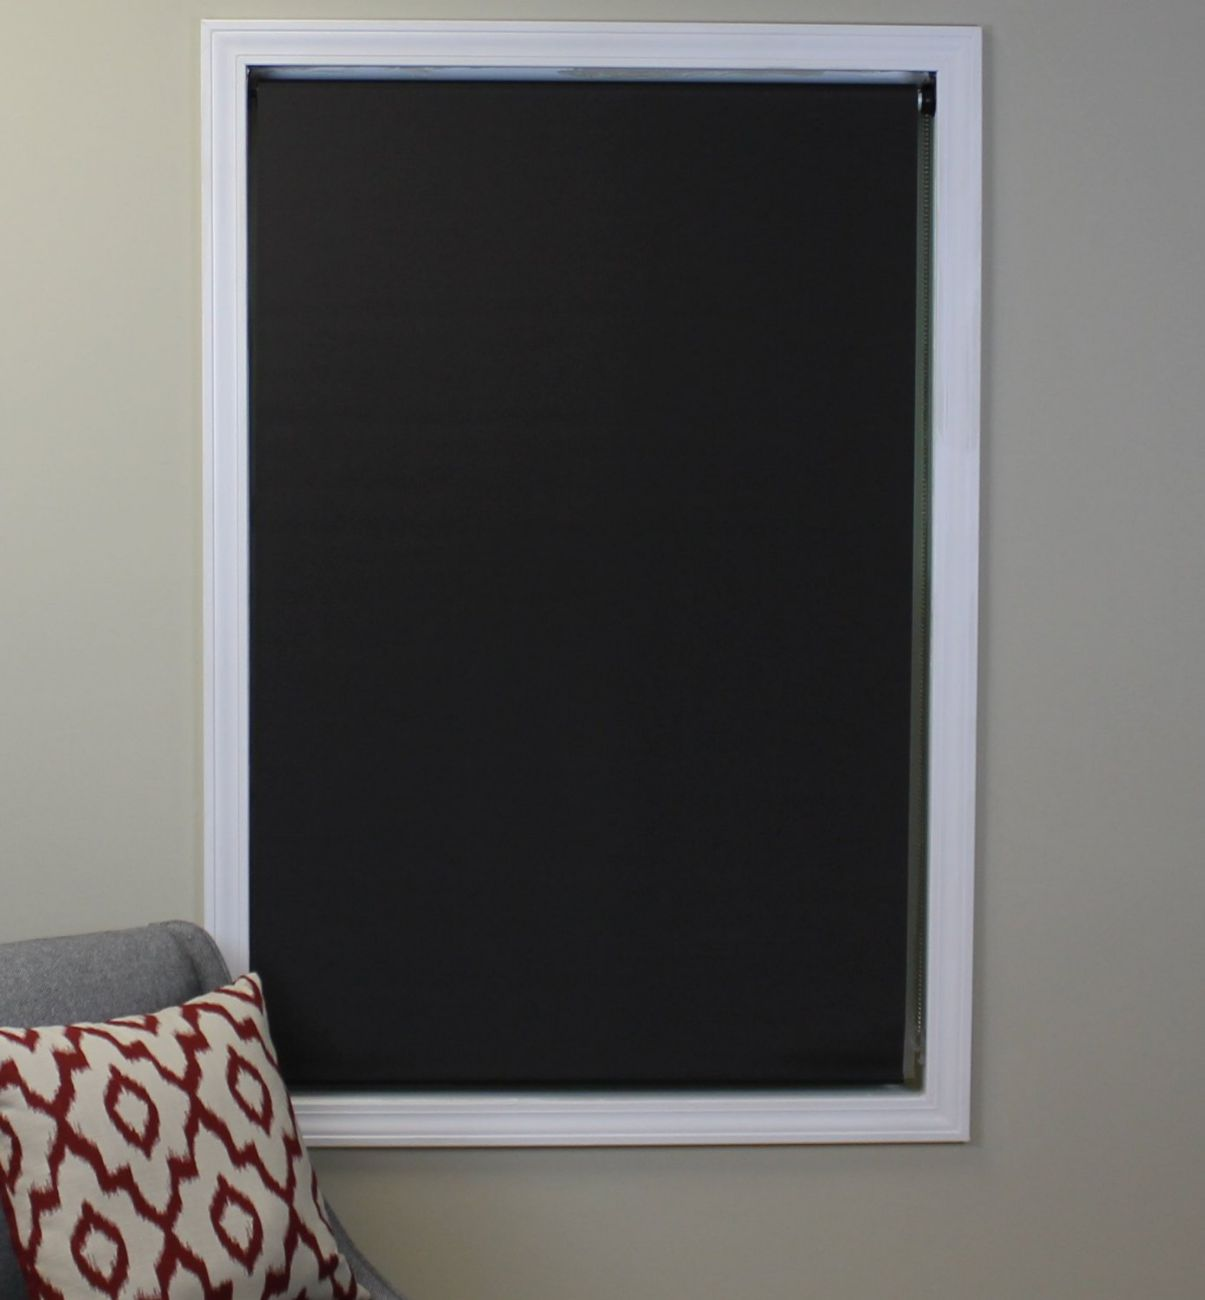 Deluxe Blackout Roller Shade, Color: Mocha, Size: 36Wx74H